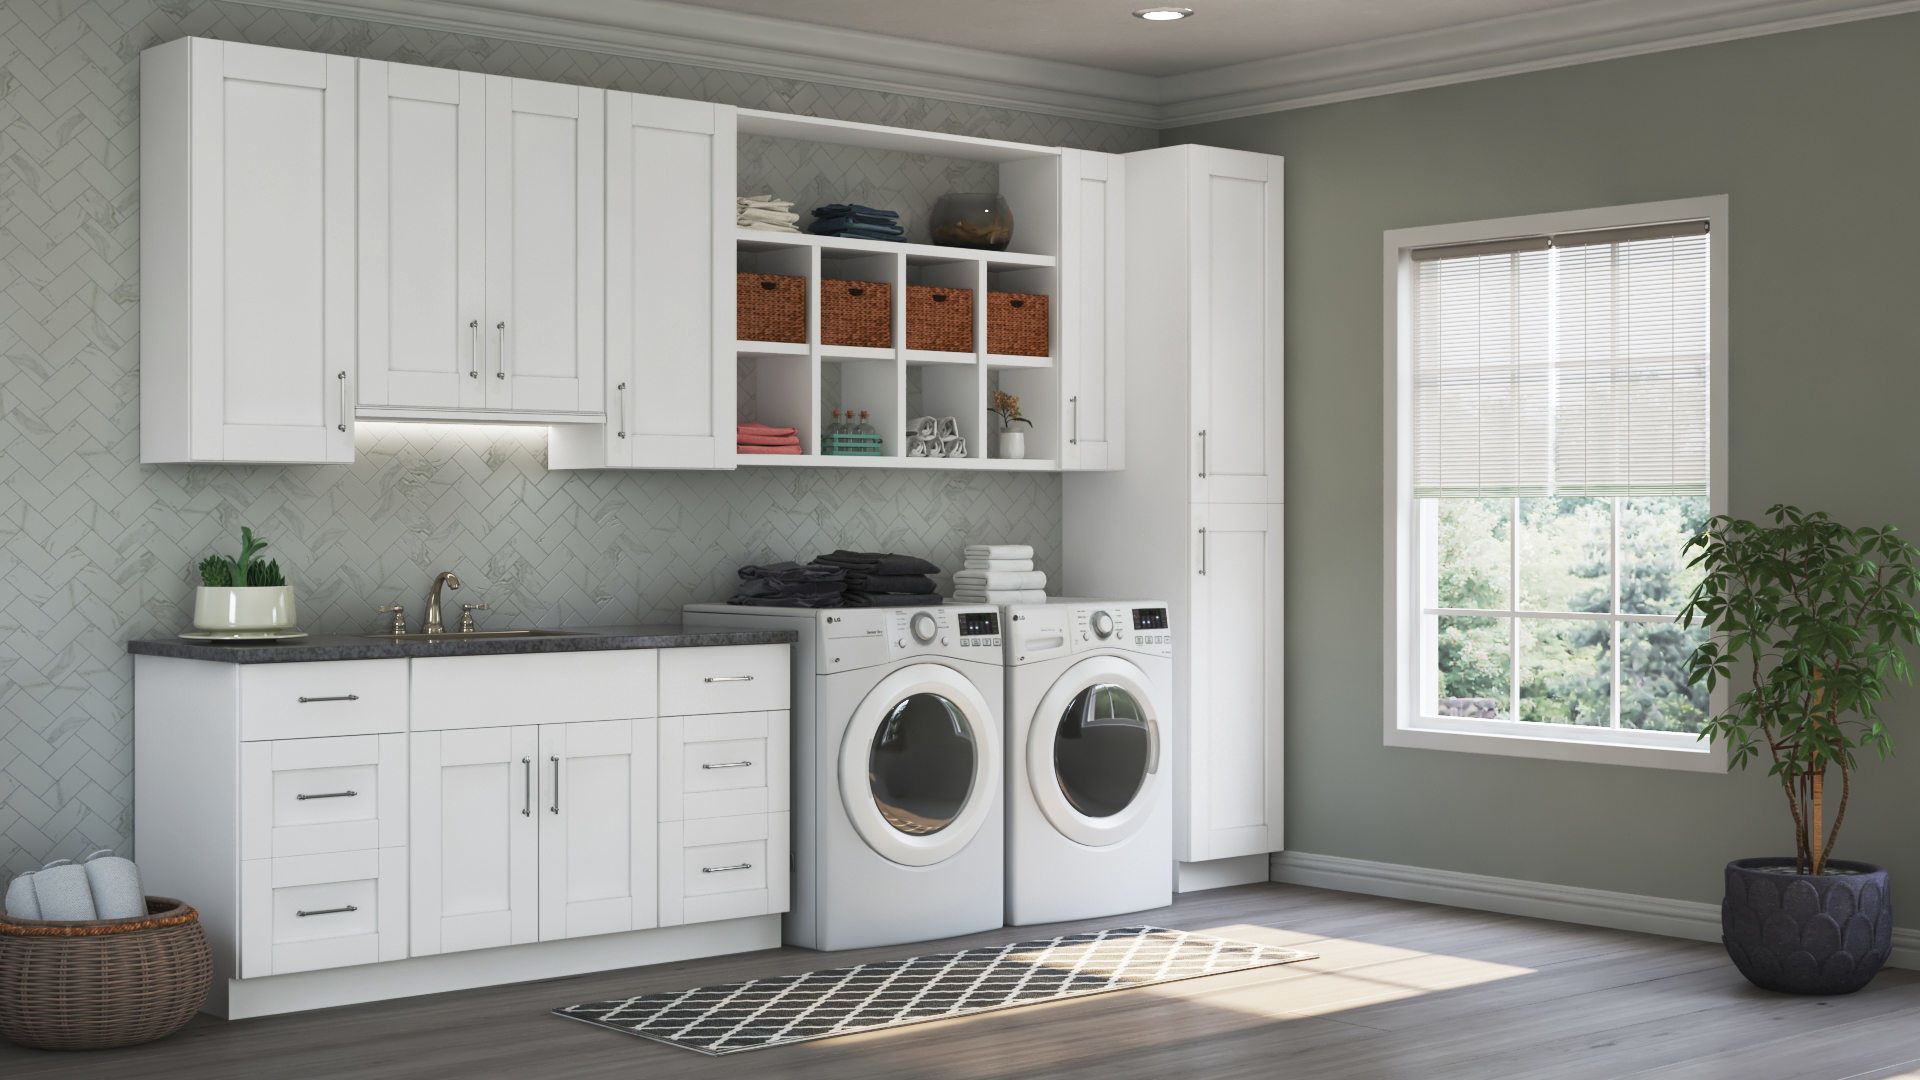 Best Shaker Wall Cabinets In White – Kitchen – The Home Depot 400 x 300